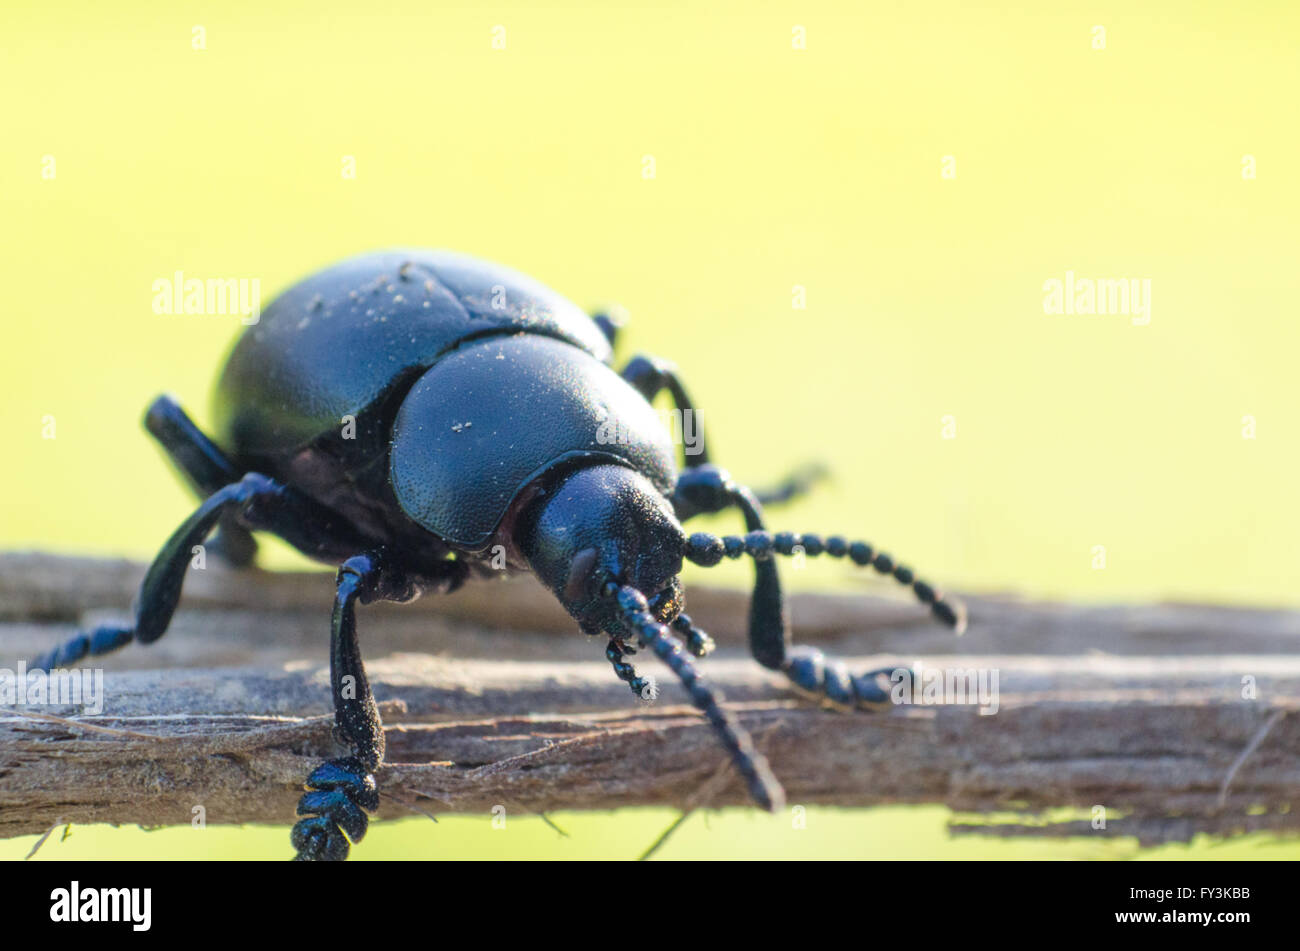 Beetle sitting on a stick - Stock Image